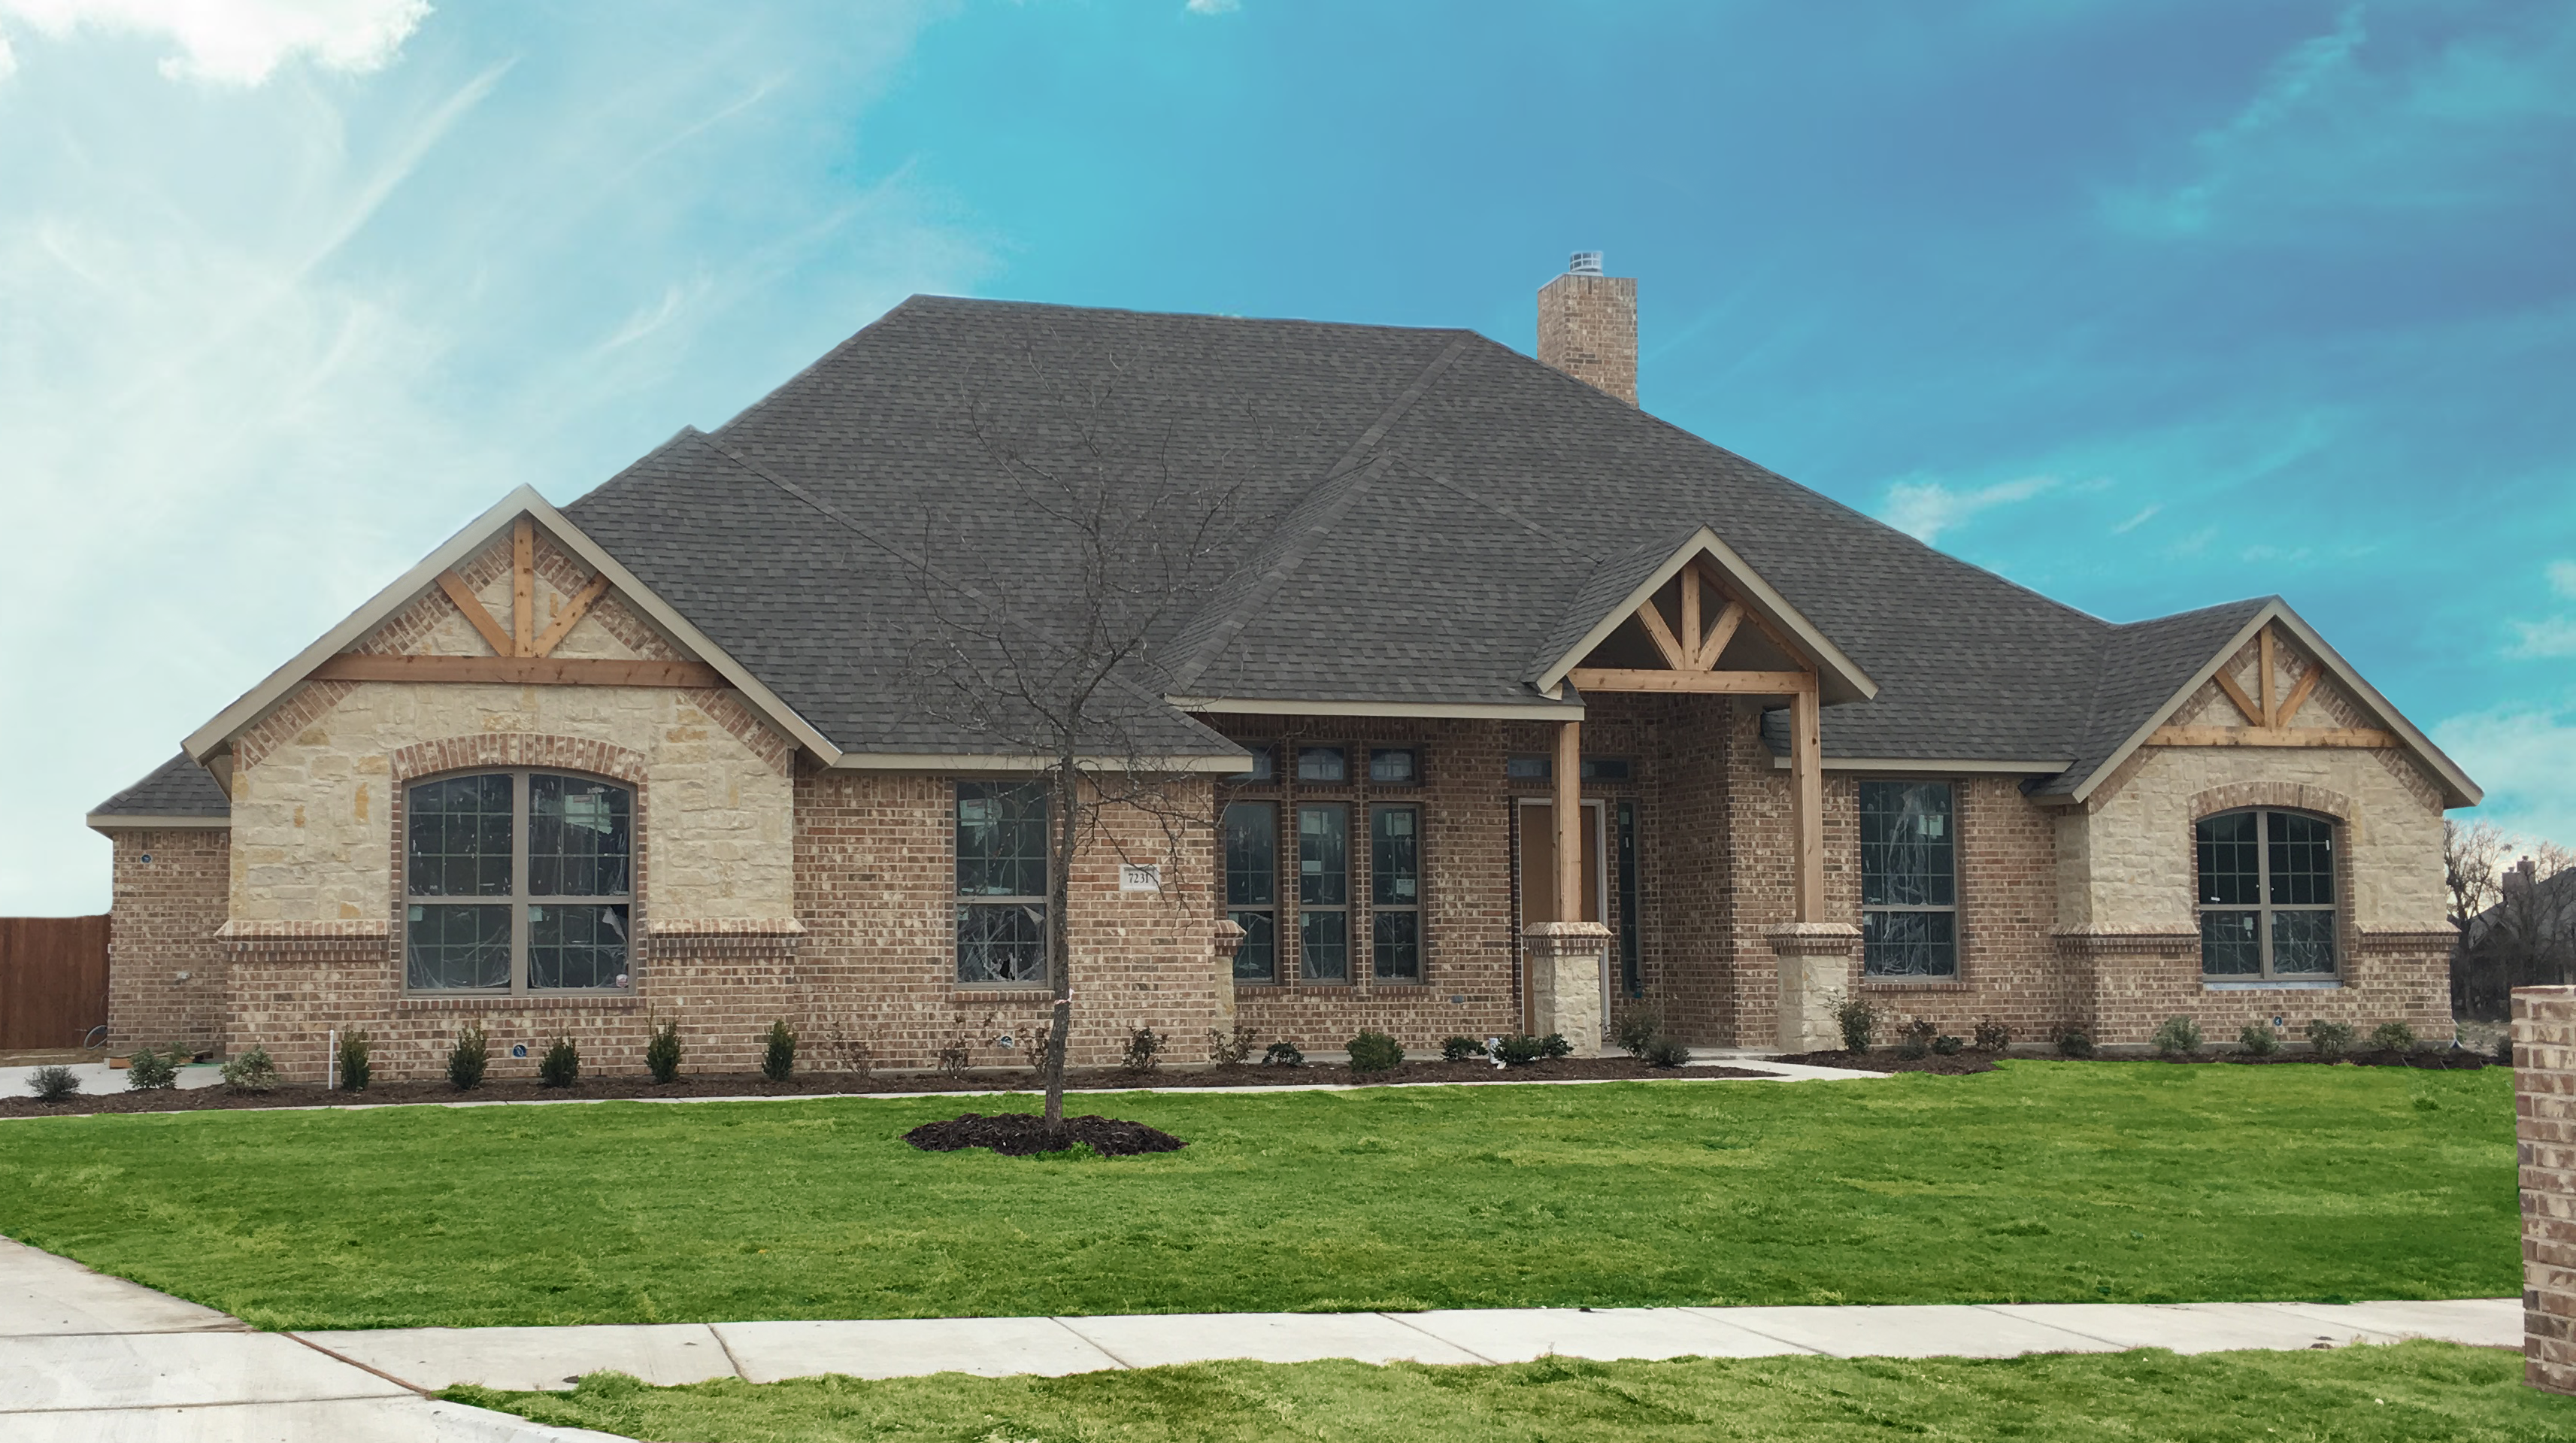 new homes for sale ovilla tx bryson manor community 7231 judy dr